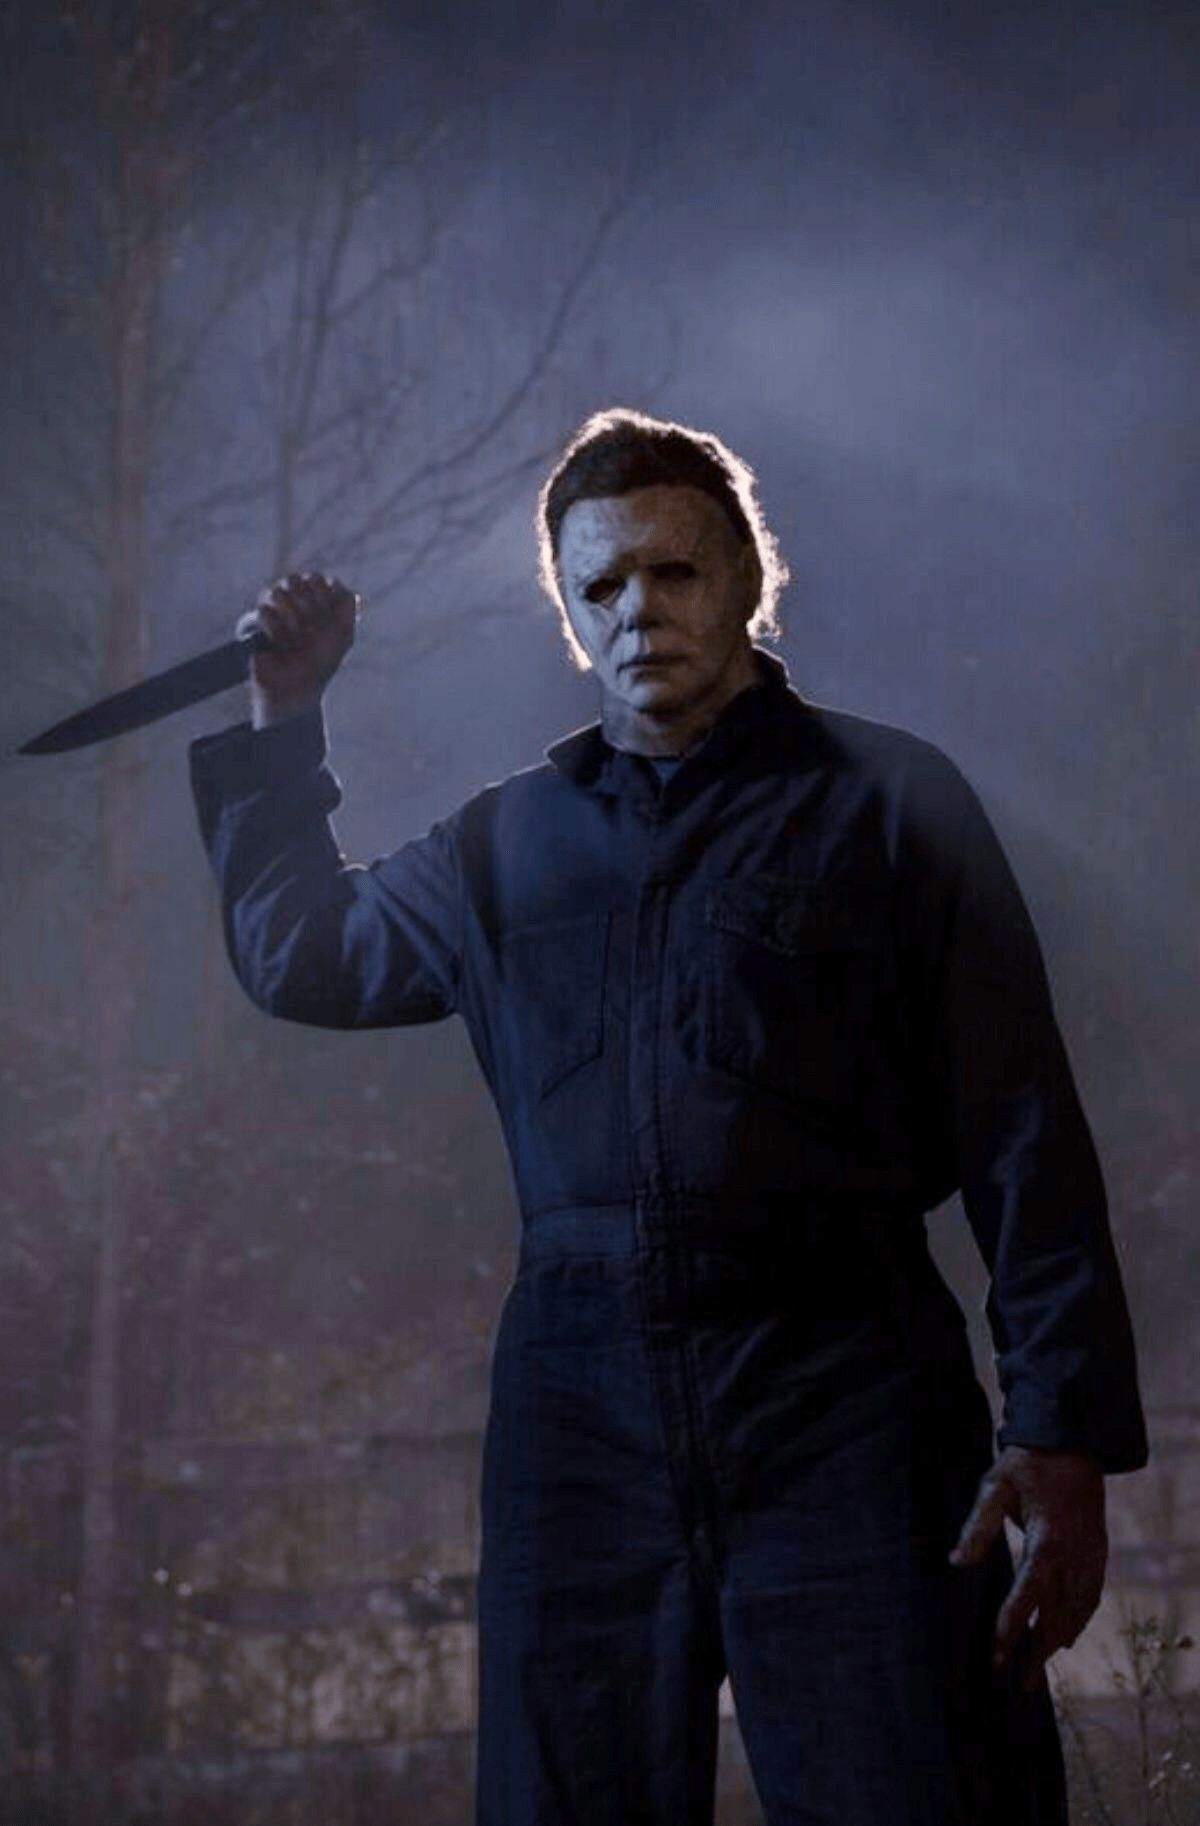 Pin by troywright on Classic Horror Michael myers